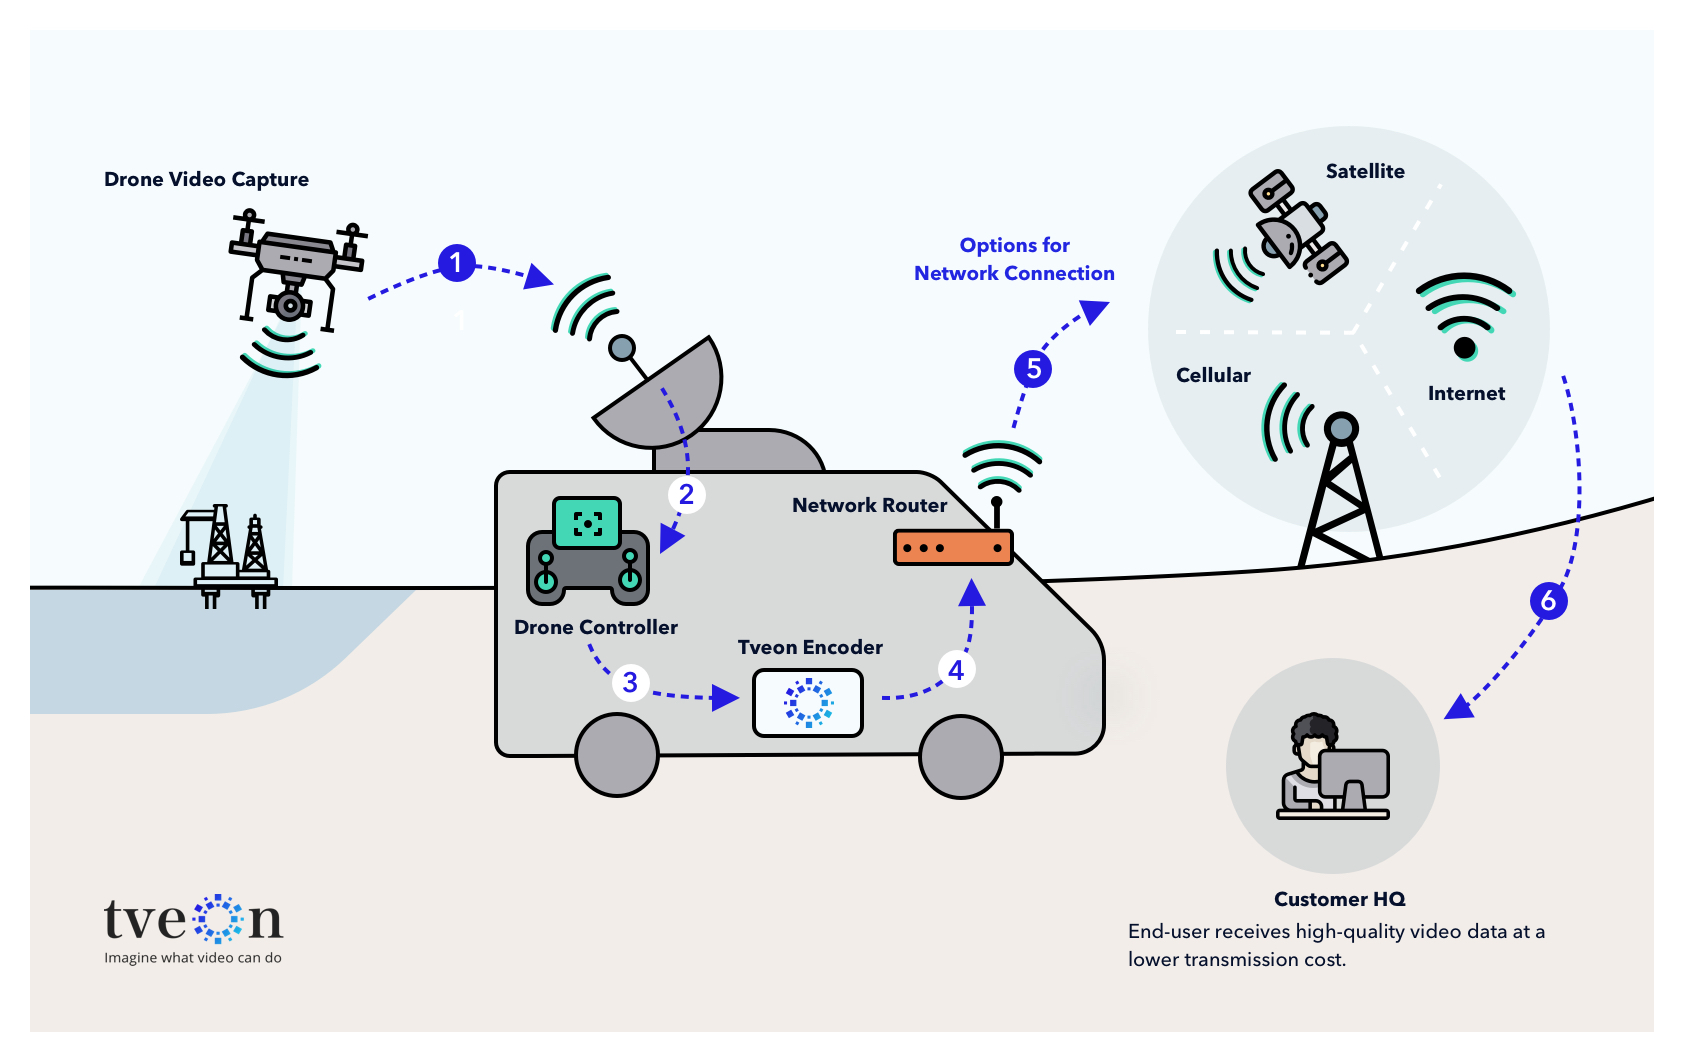 Our client's encoded video data can now be transmitted using satellite communication.